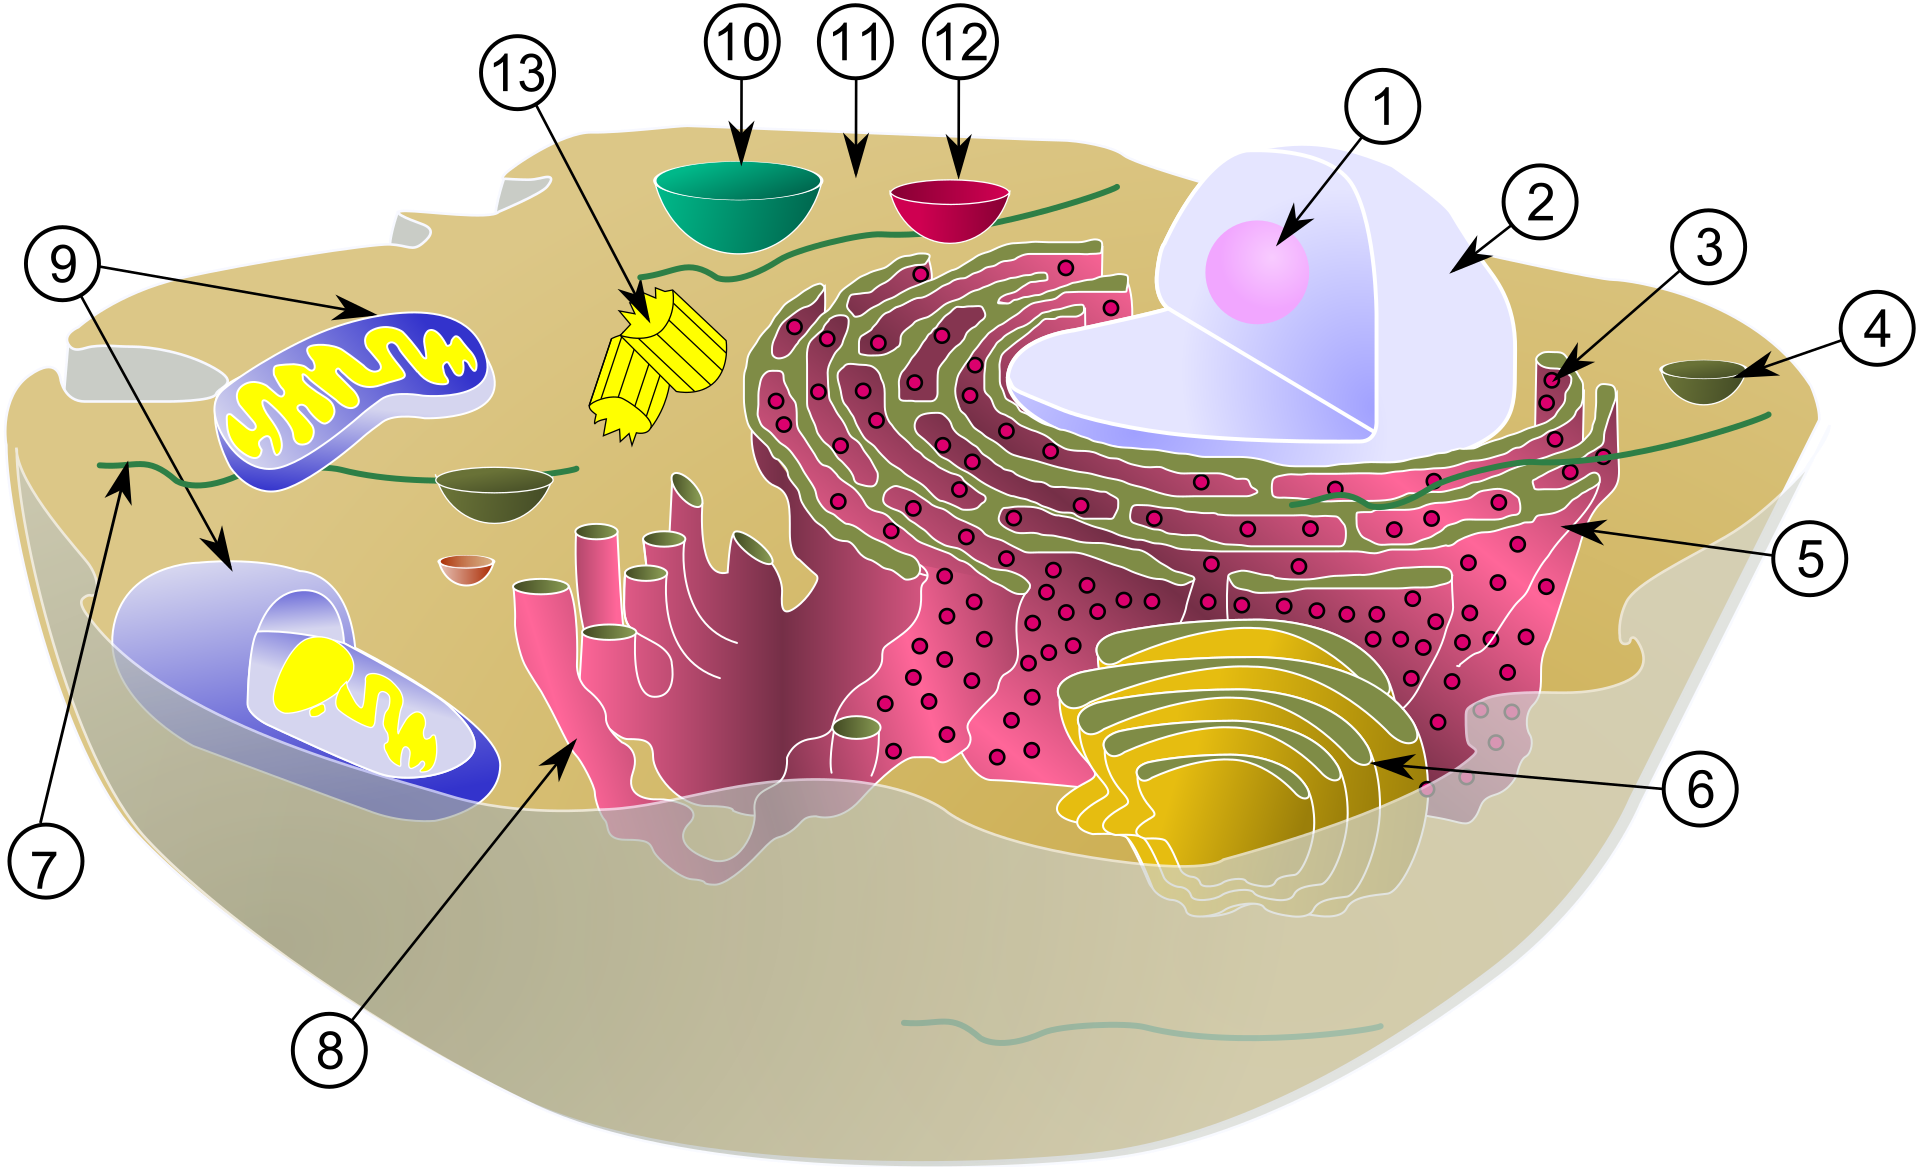 Biological_cell